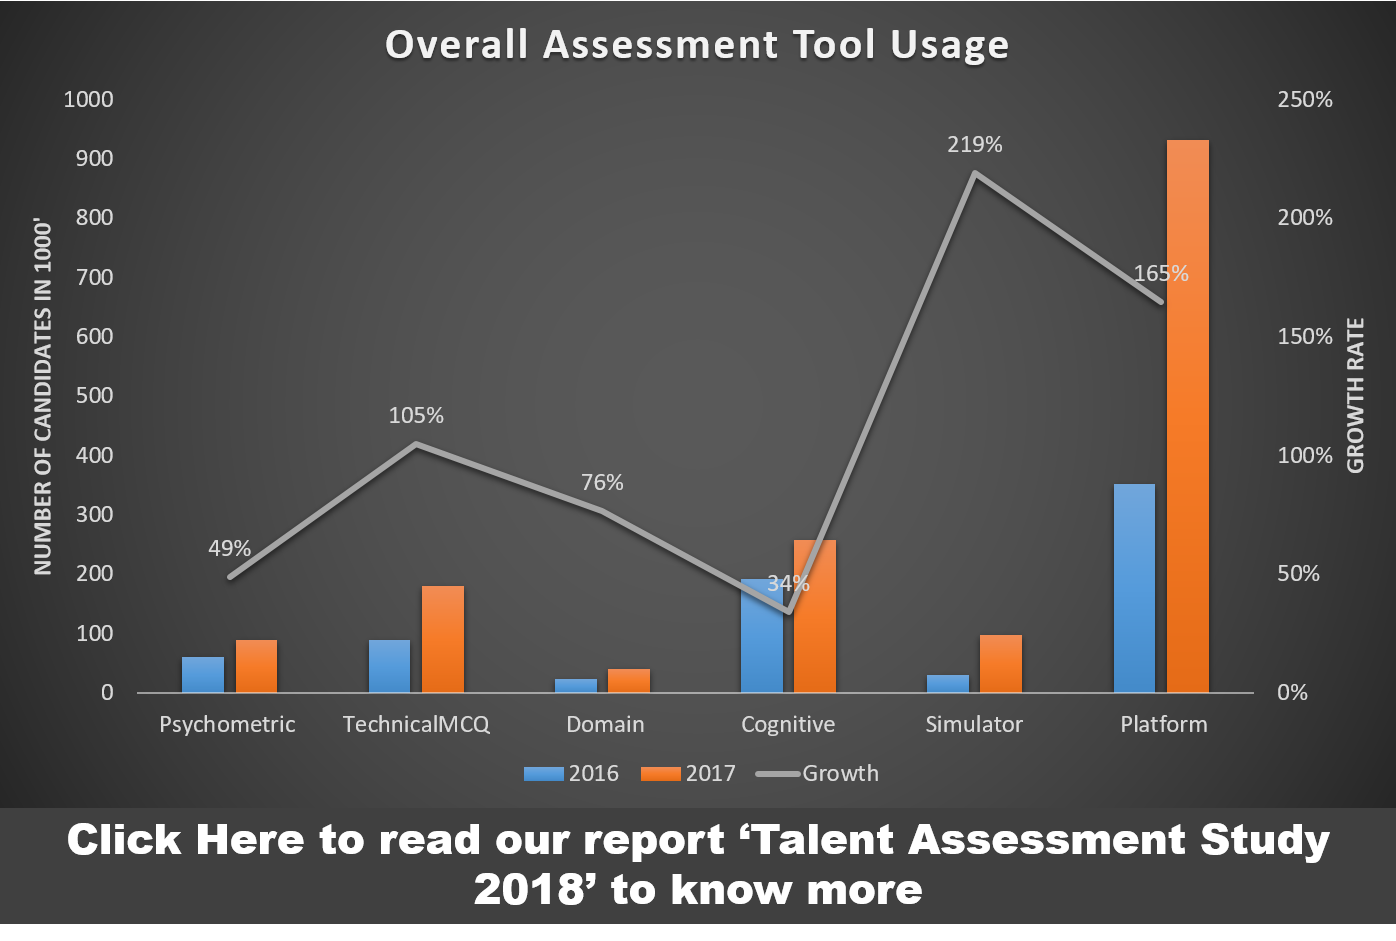 Talent Assessment Tools Trends 2018; Talent Assessment Study; Psychometric, Cognitive, Simulators, Talent Assessment types of tools , Talent Assessment Trends 2018